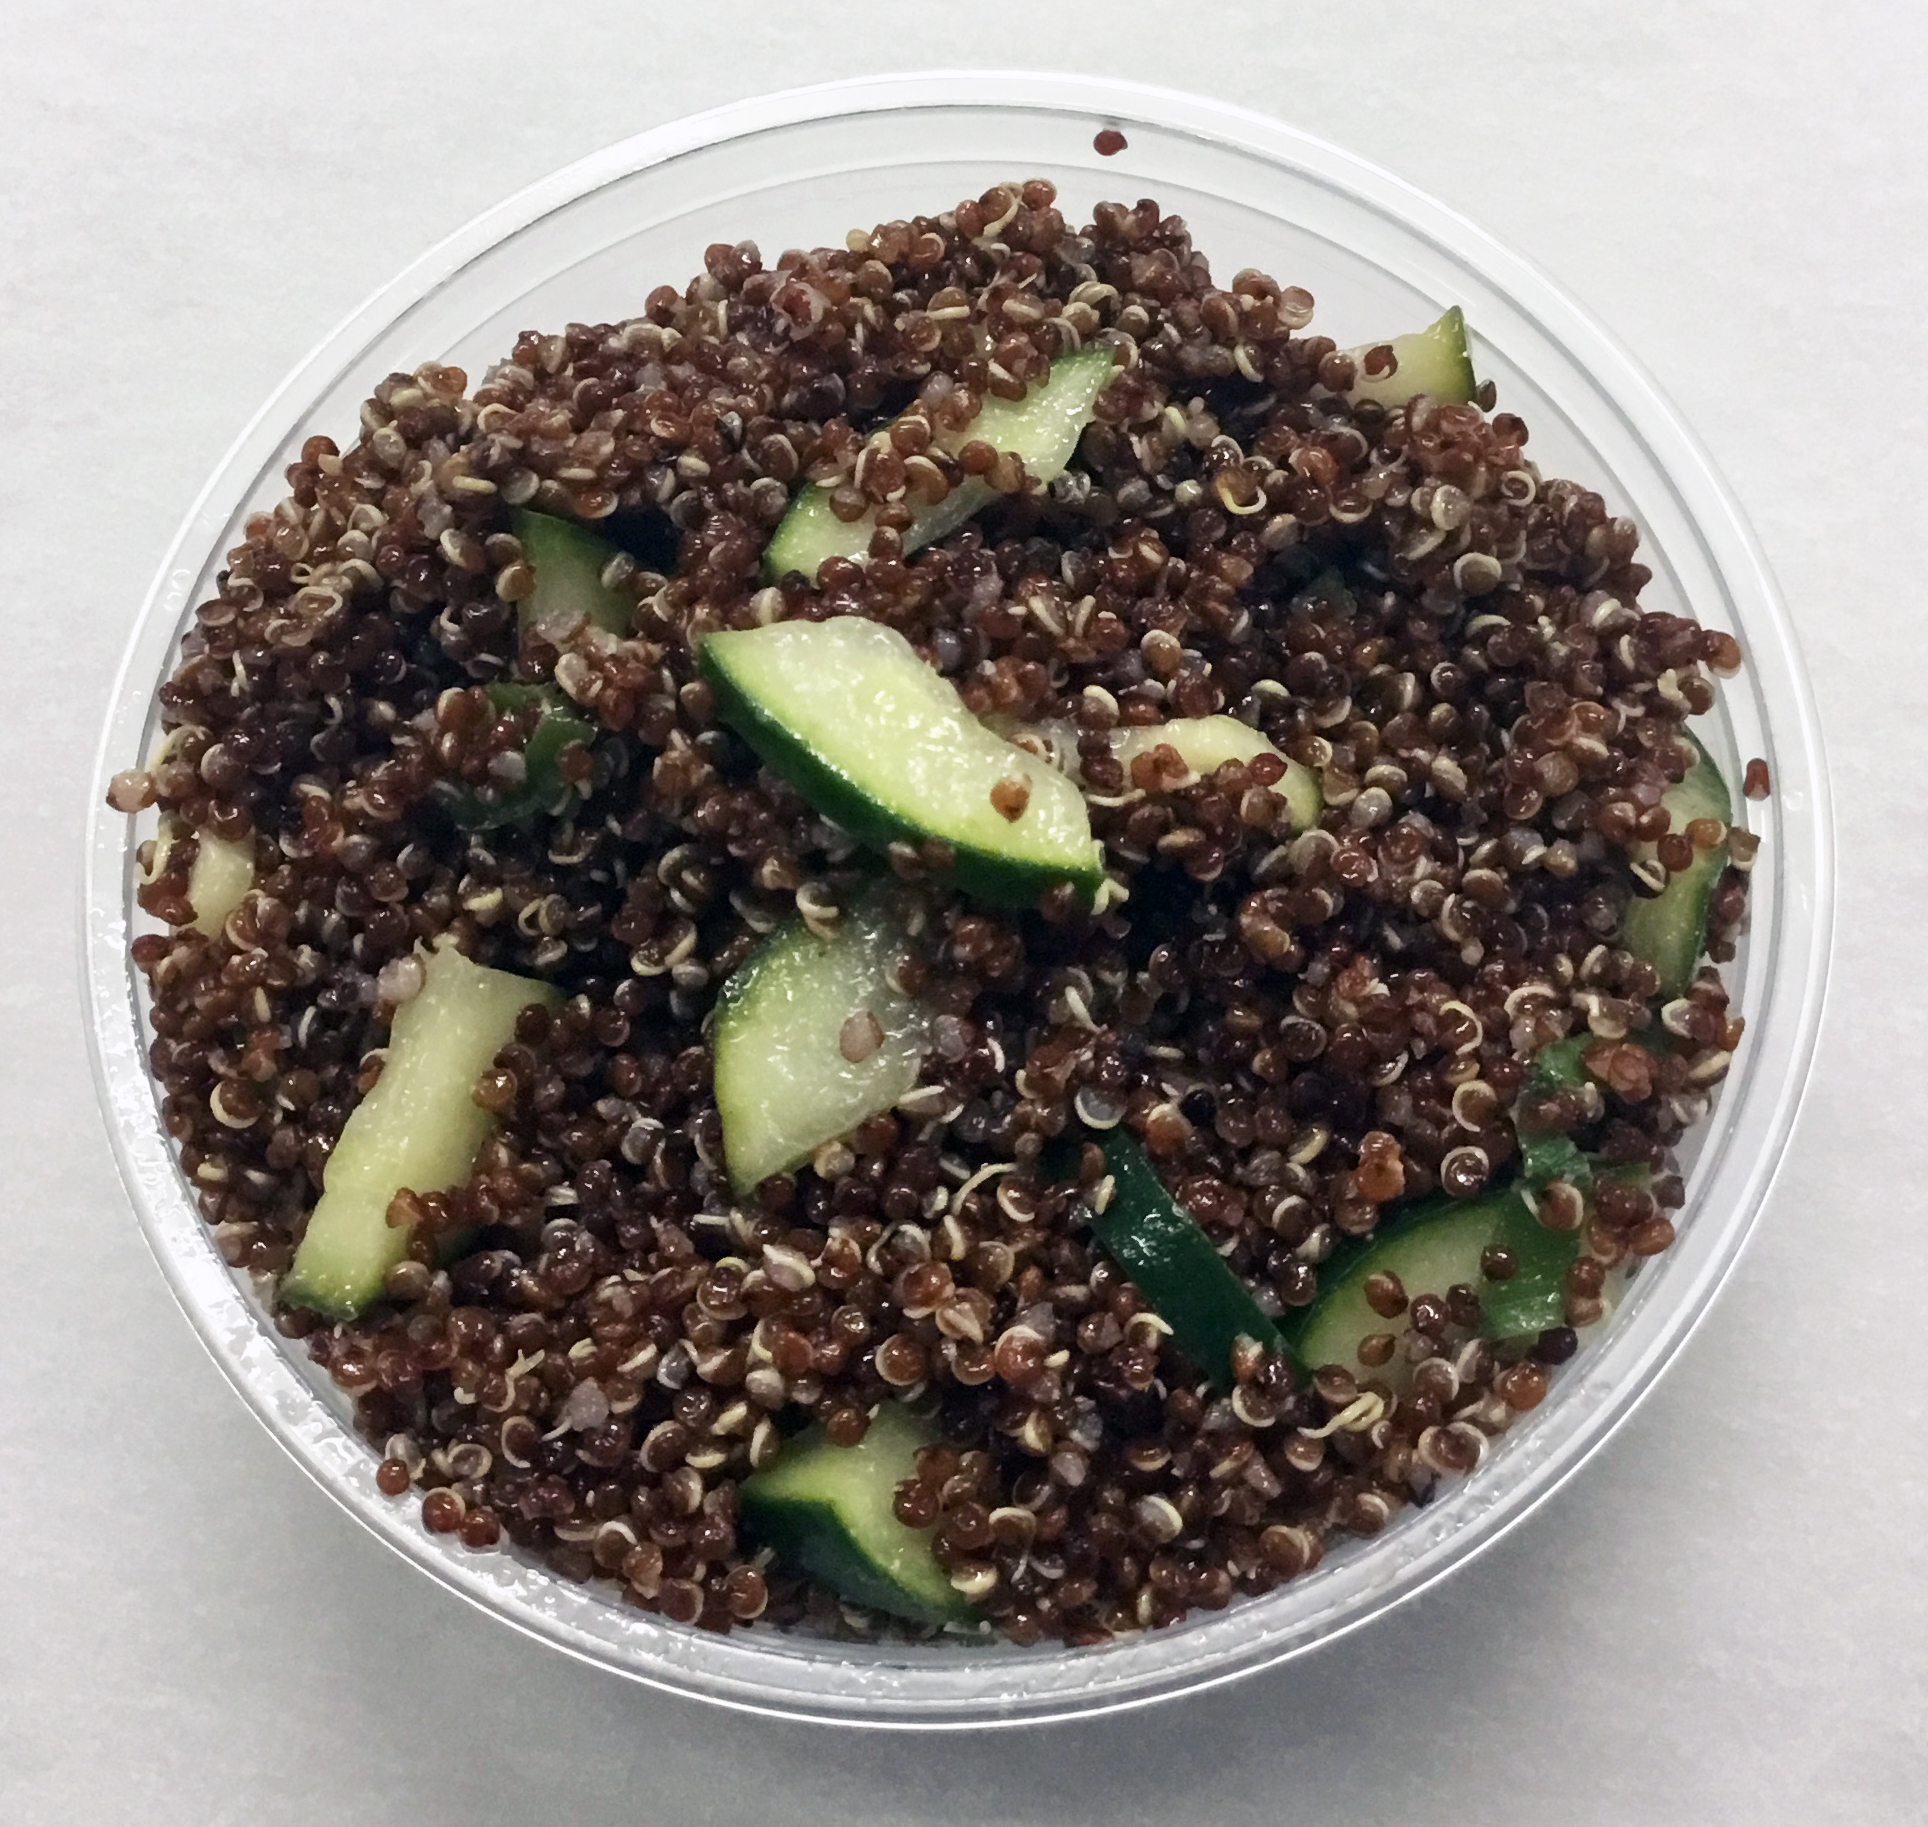 Red quinoa with cucumber and an umeboshi vinegar dressing.